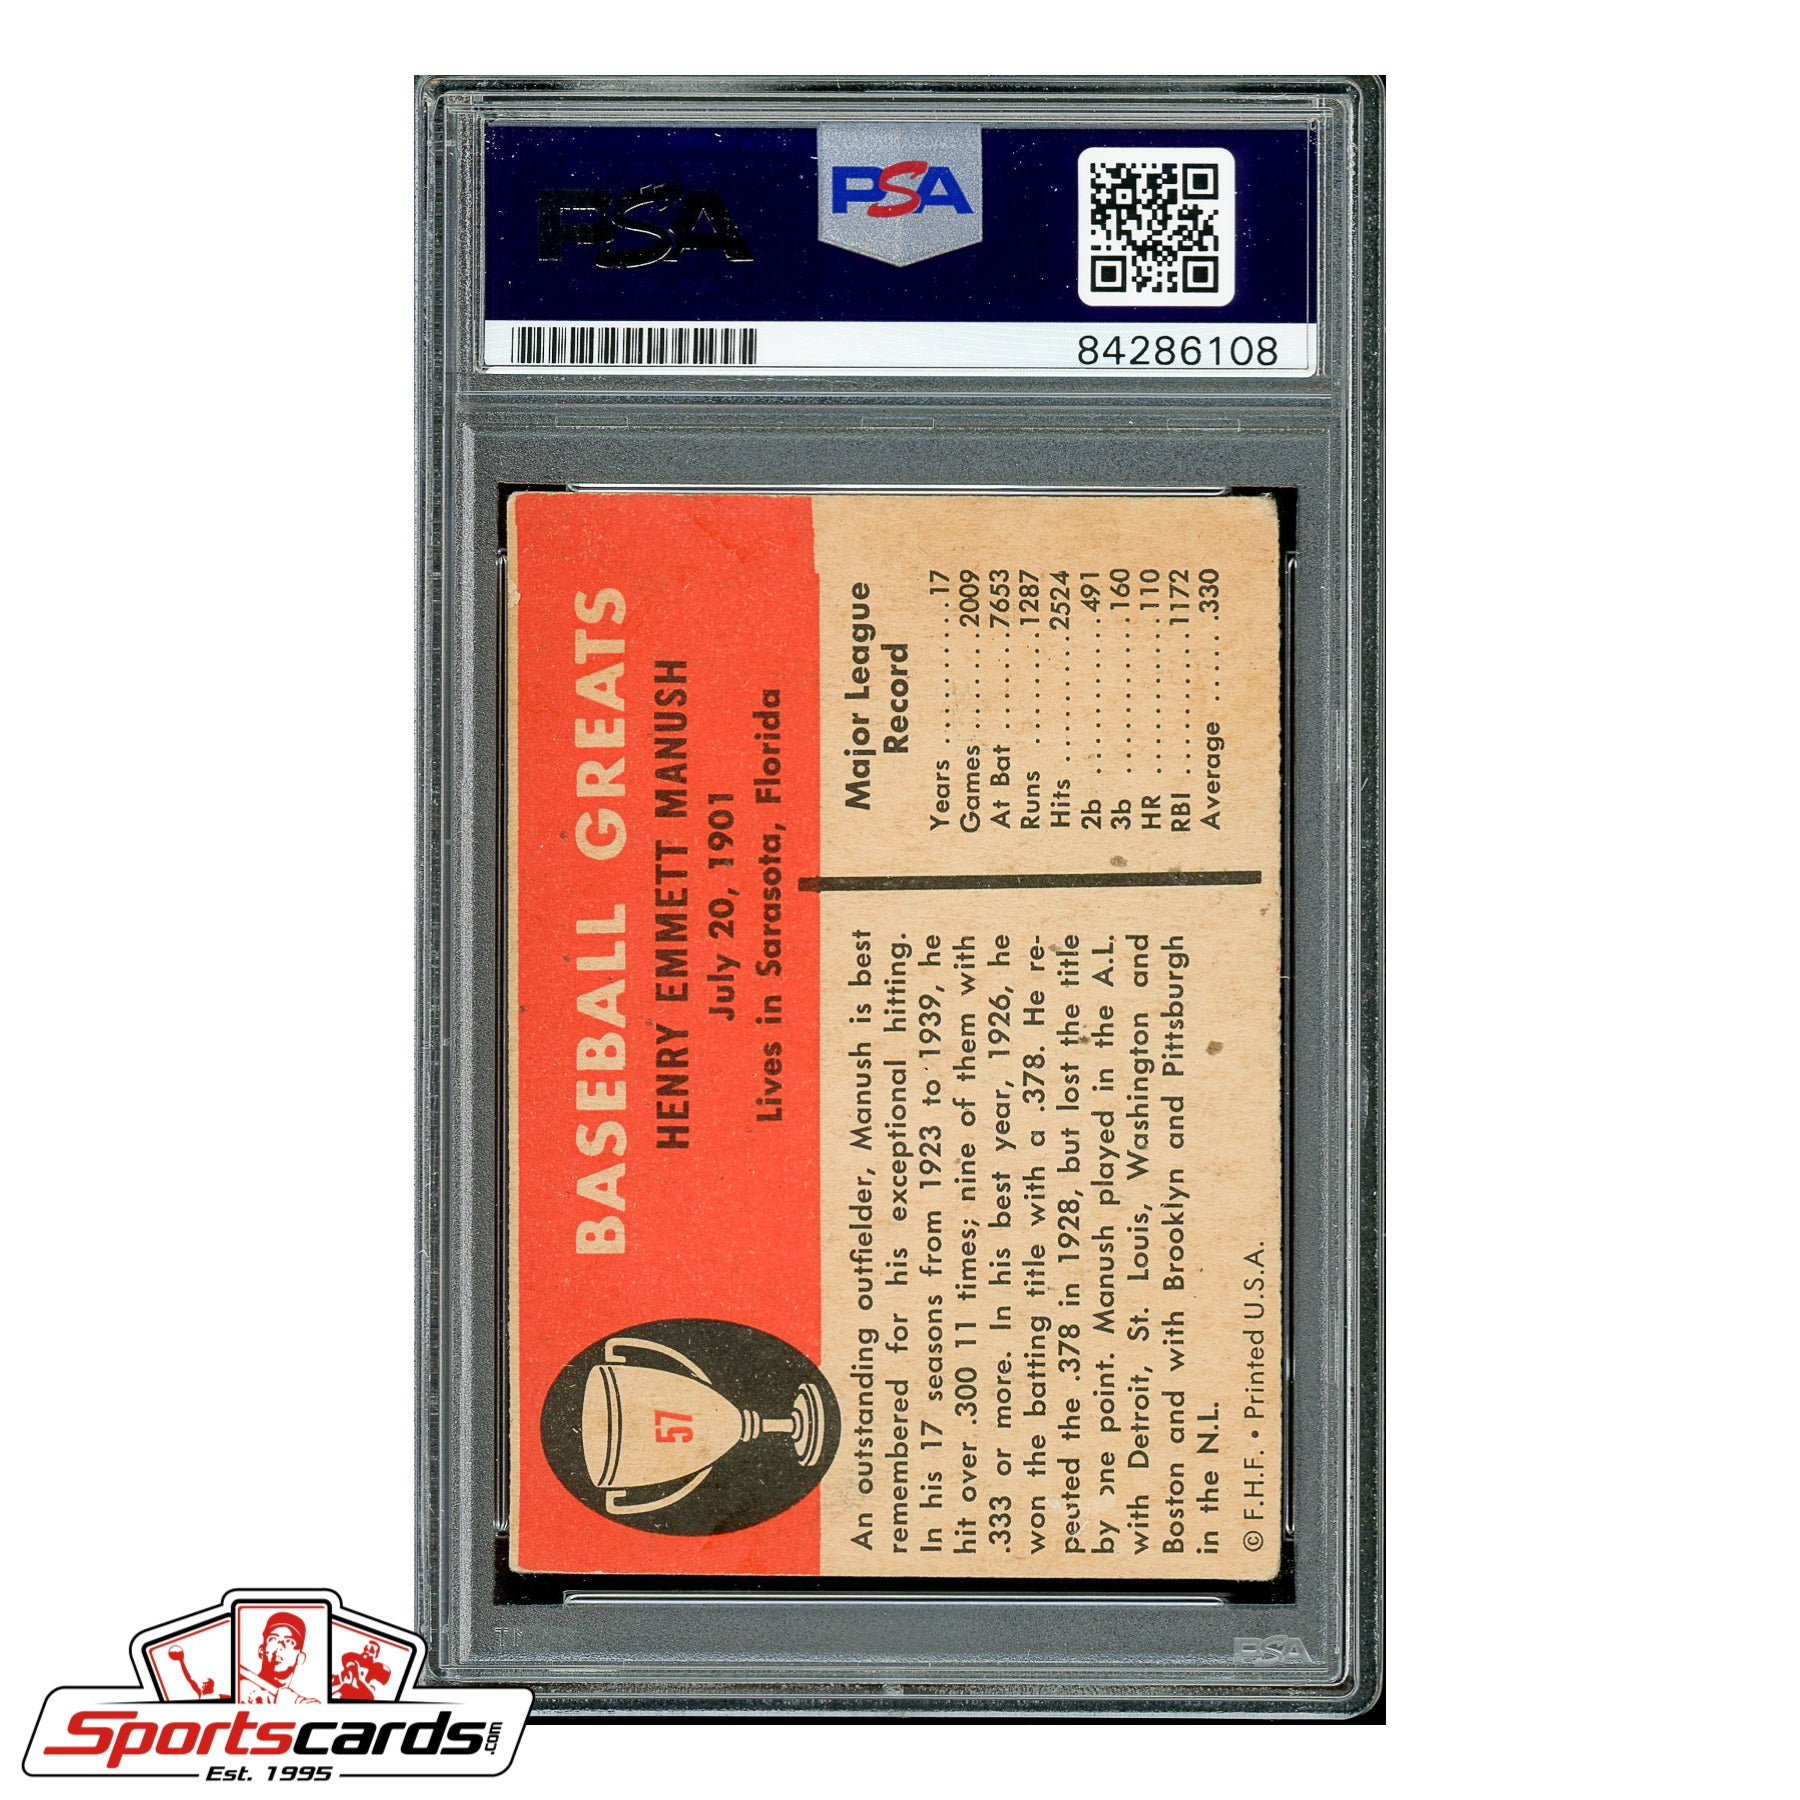 Heinie Manush Signed Auto 1961 Fleer Card - PSA/DNA